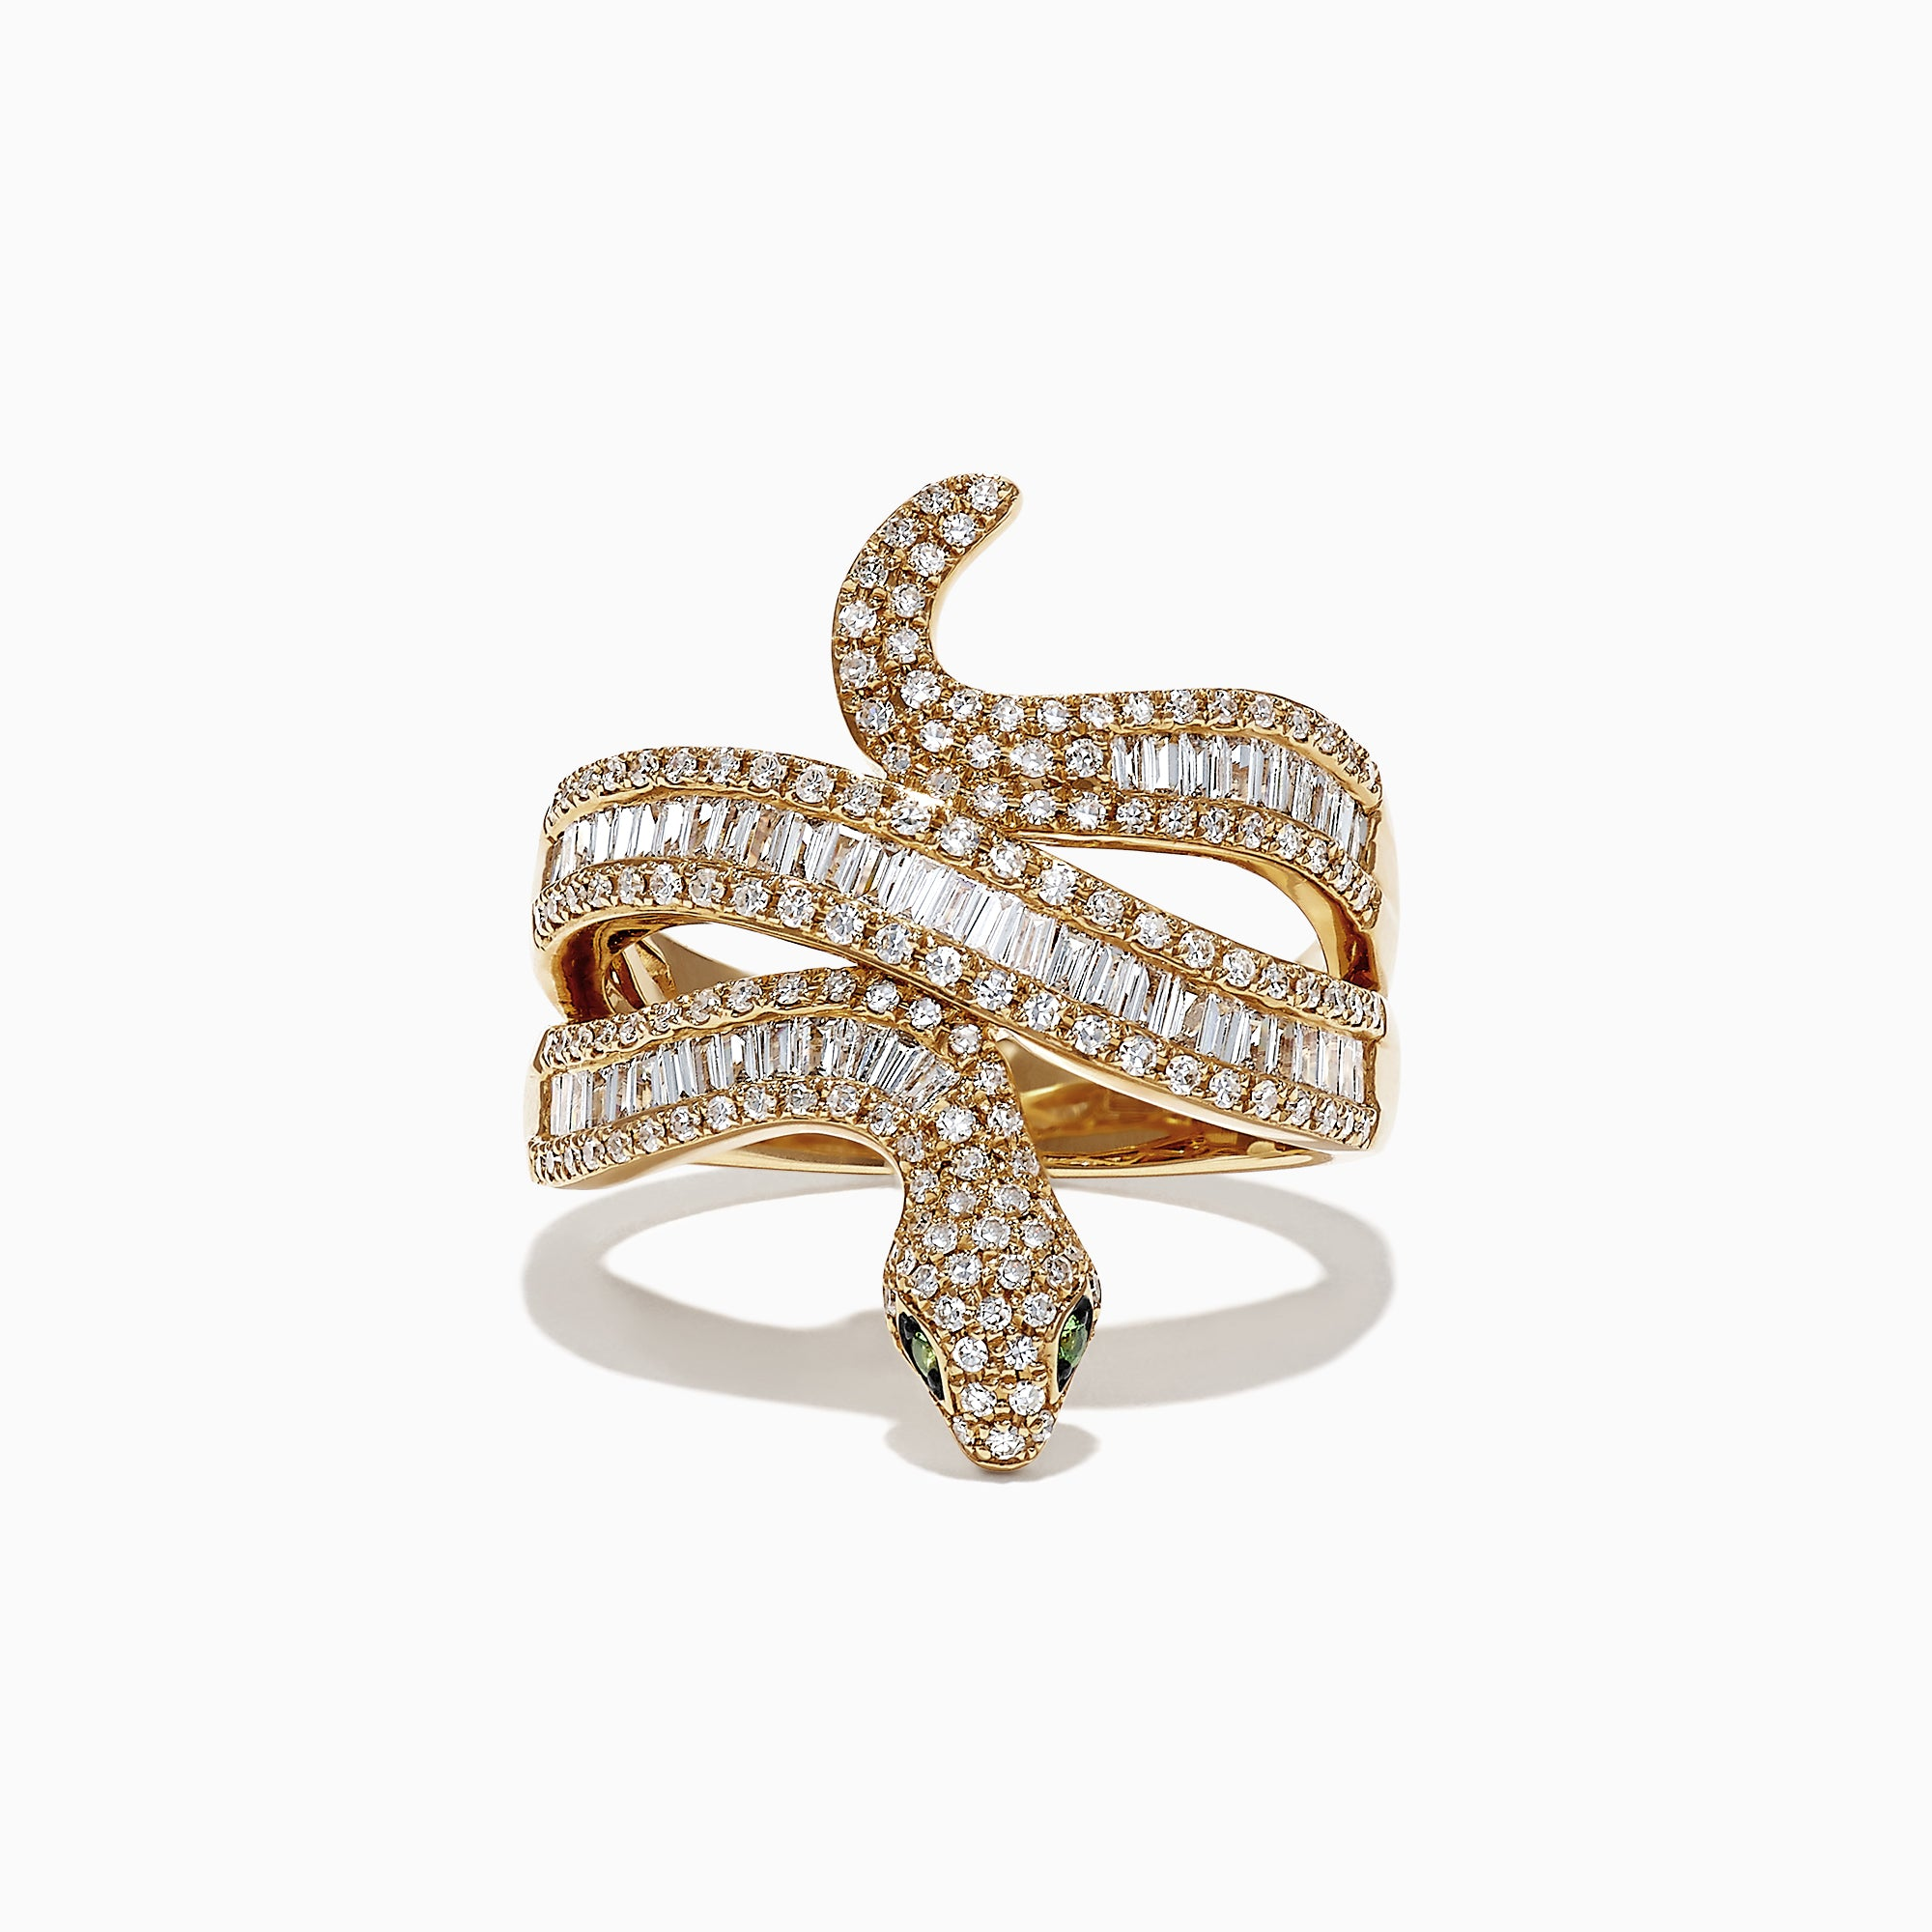 Effy Safari 14K Yellow Gold Diamond Snake Ring, 0.95 TCW